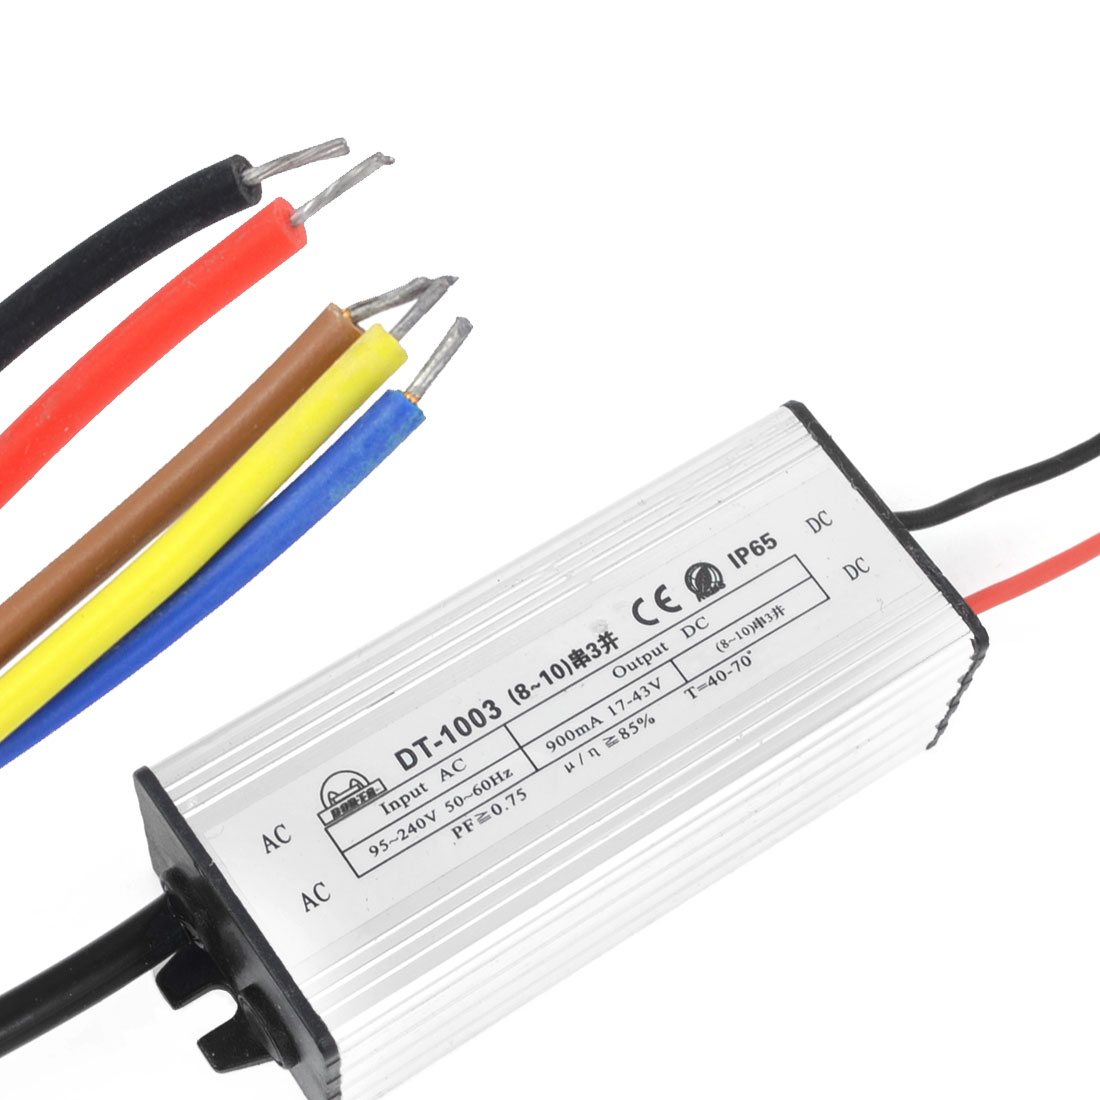 DC 17-43V 900mA 30W Aluminum Waterproof LED Driver Transformer Power Supply